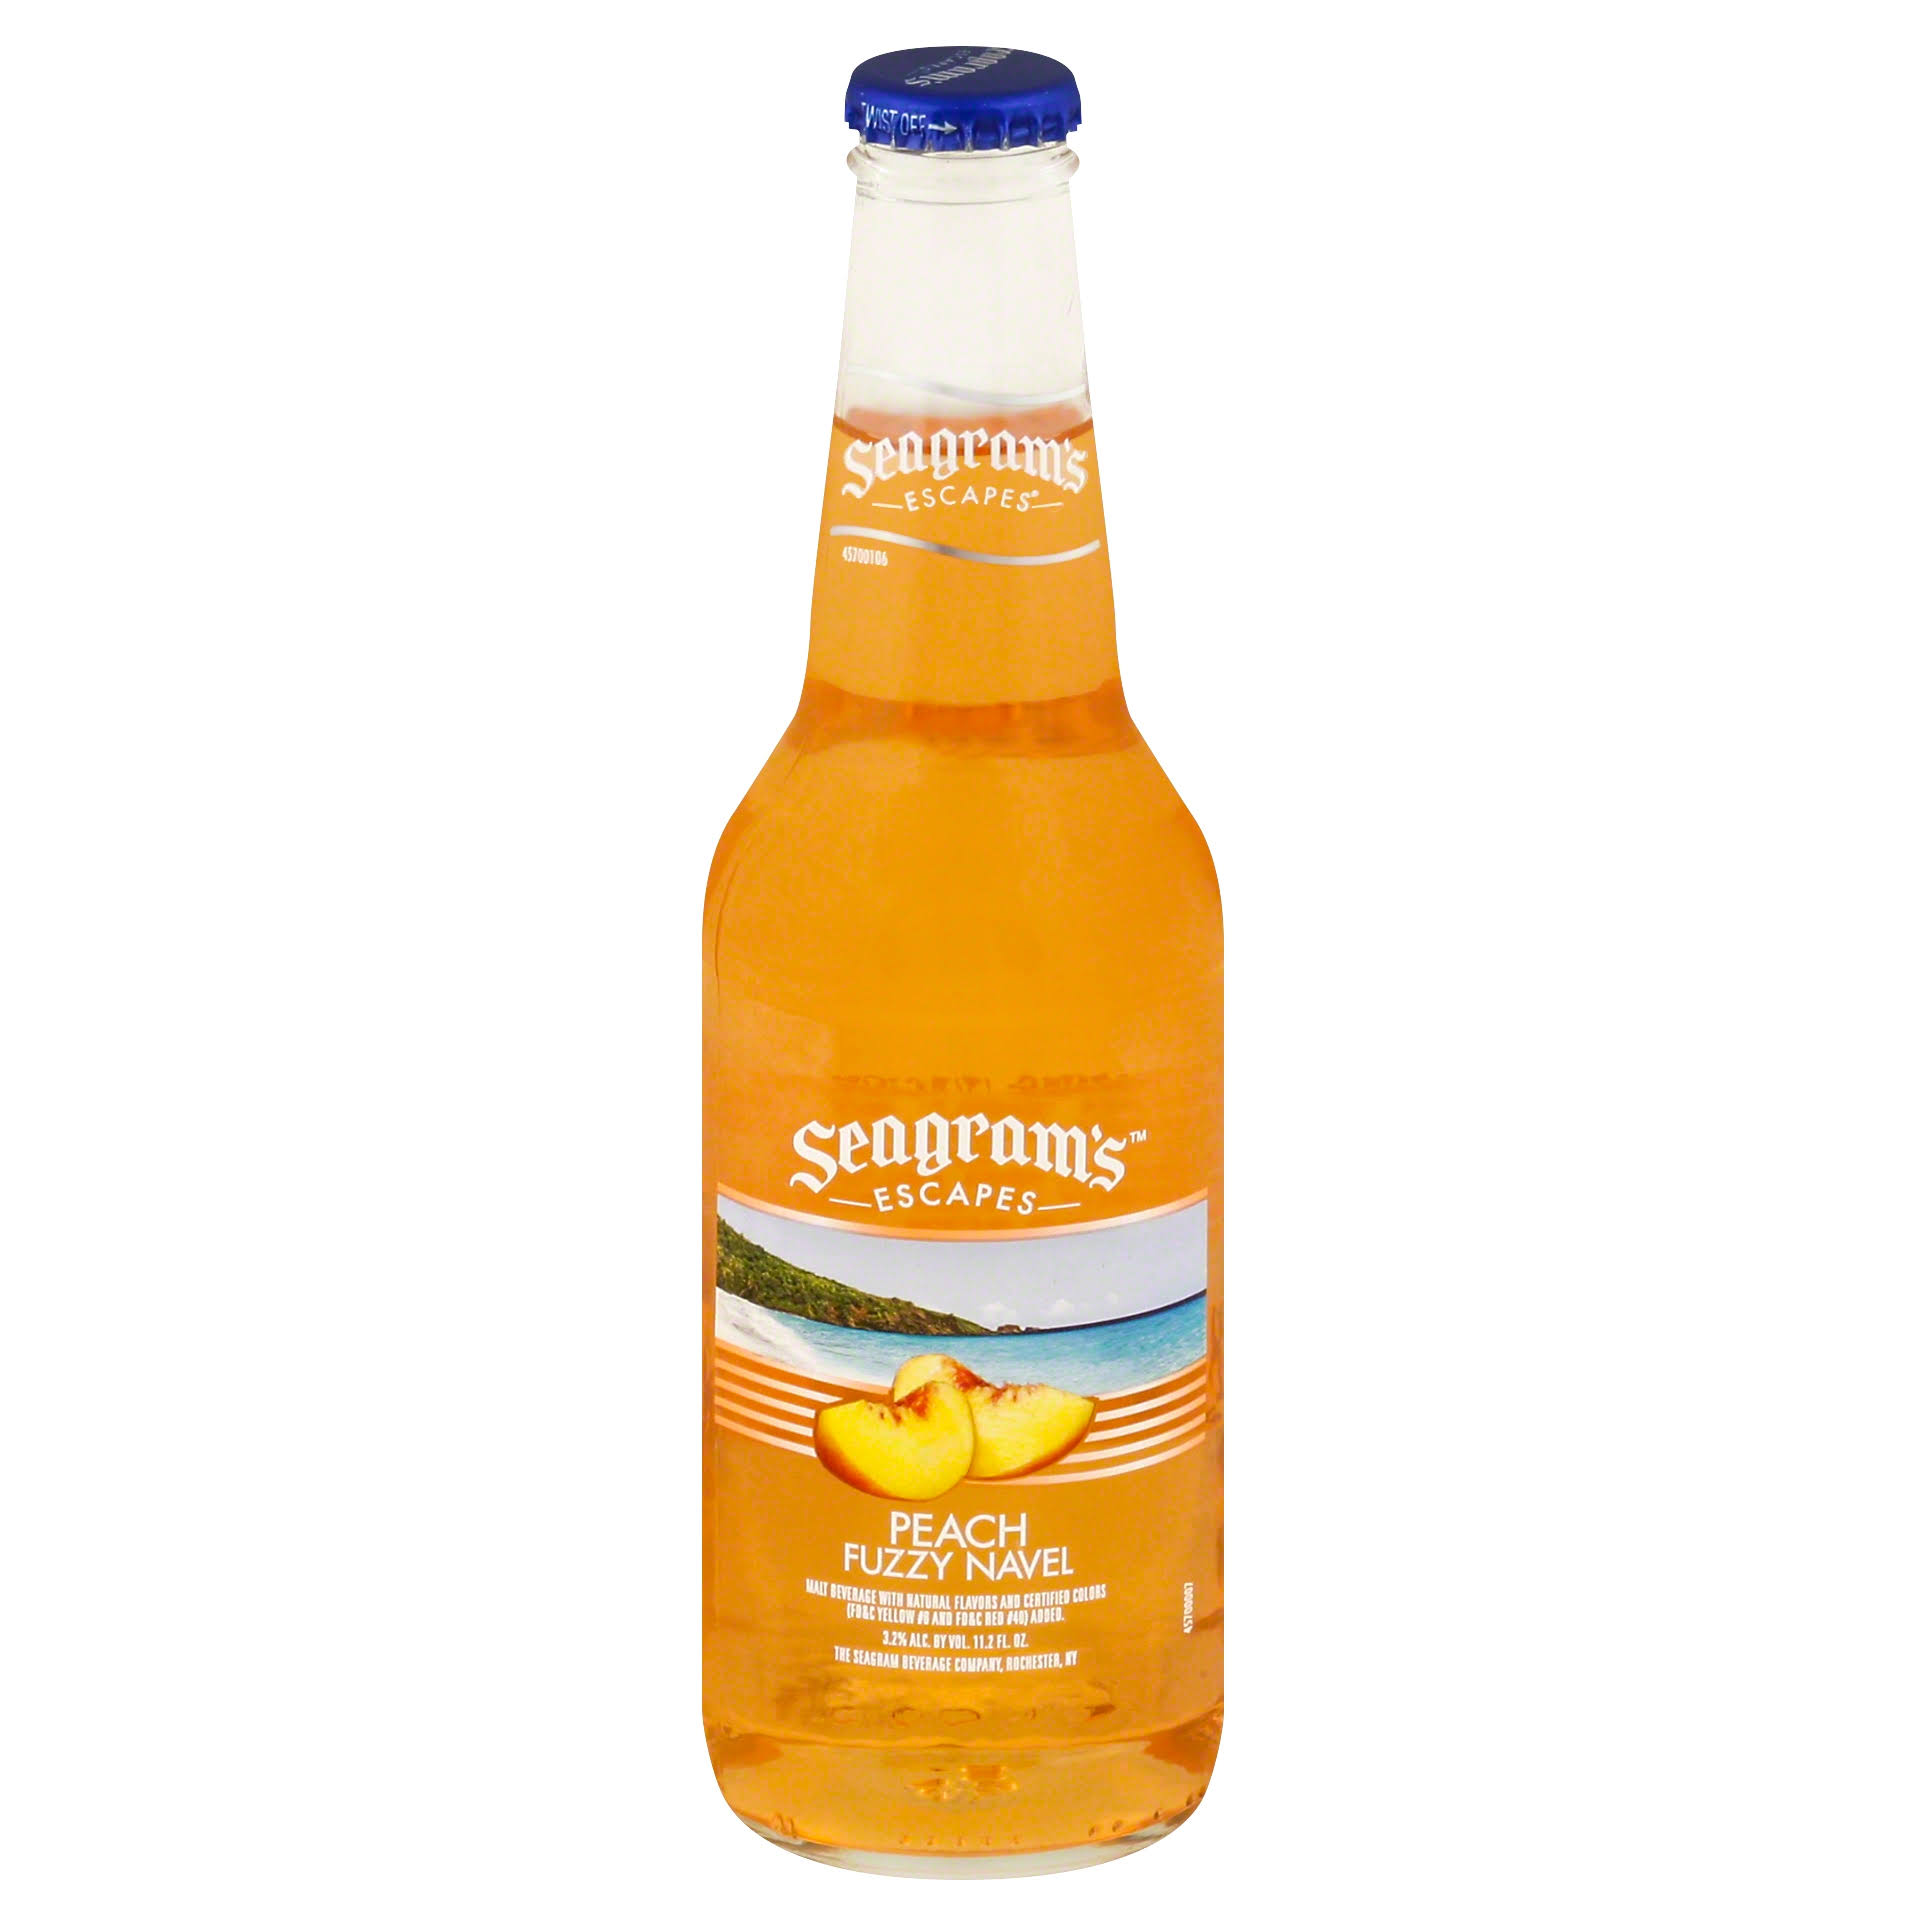 Seagram's Escapes Flavored Cooler - Peach Fuzzy Navel, 12oz